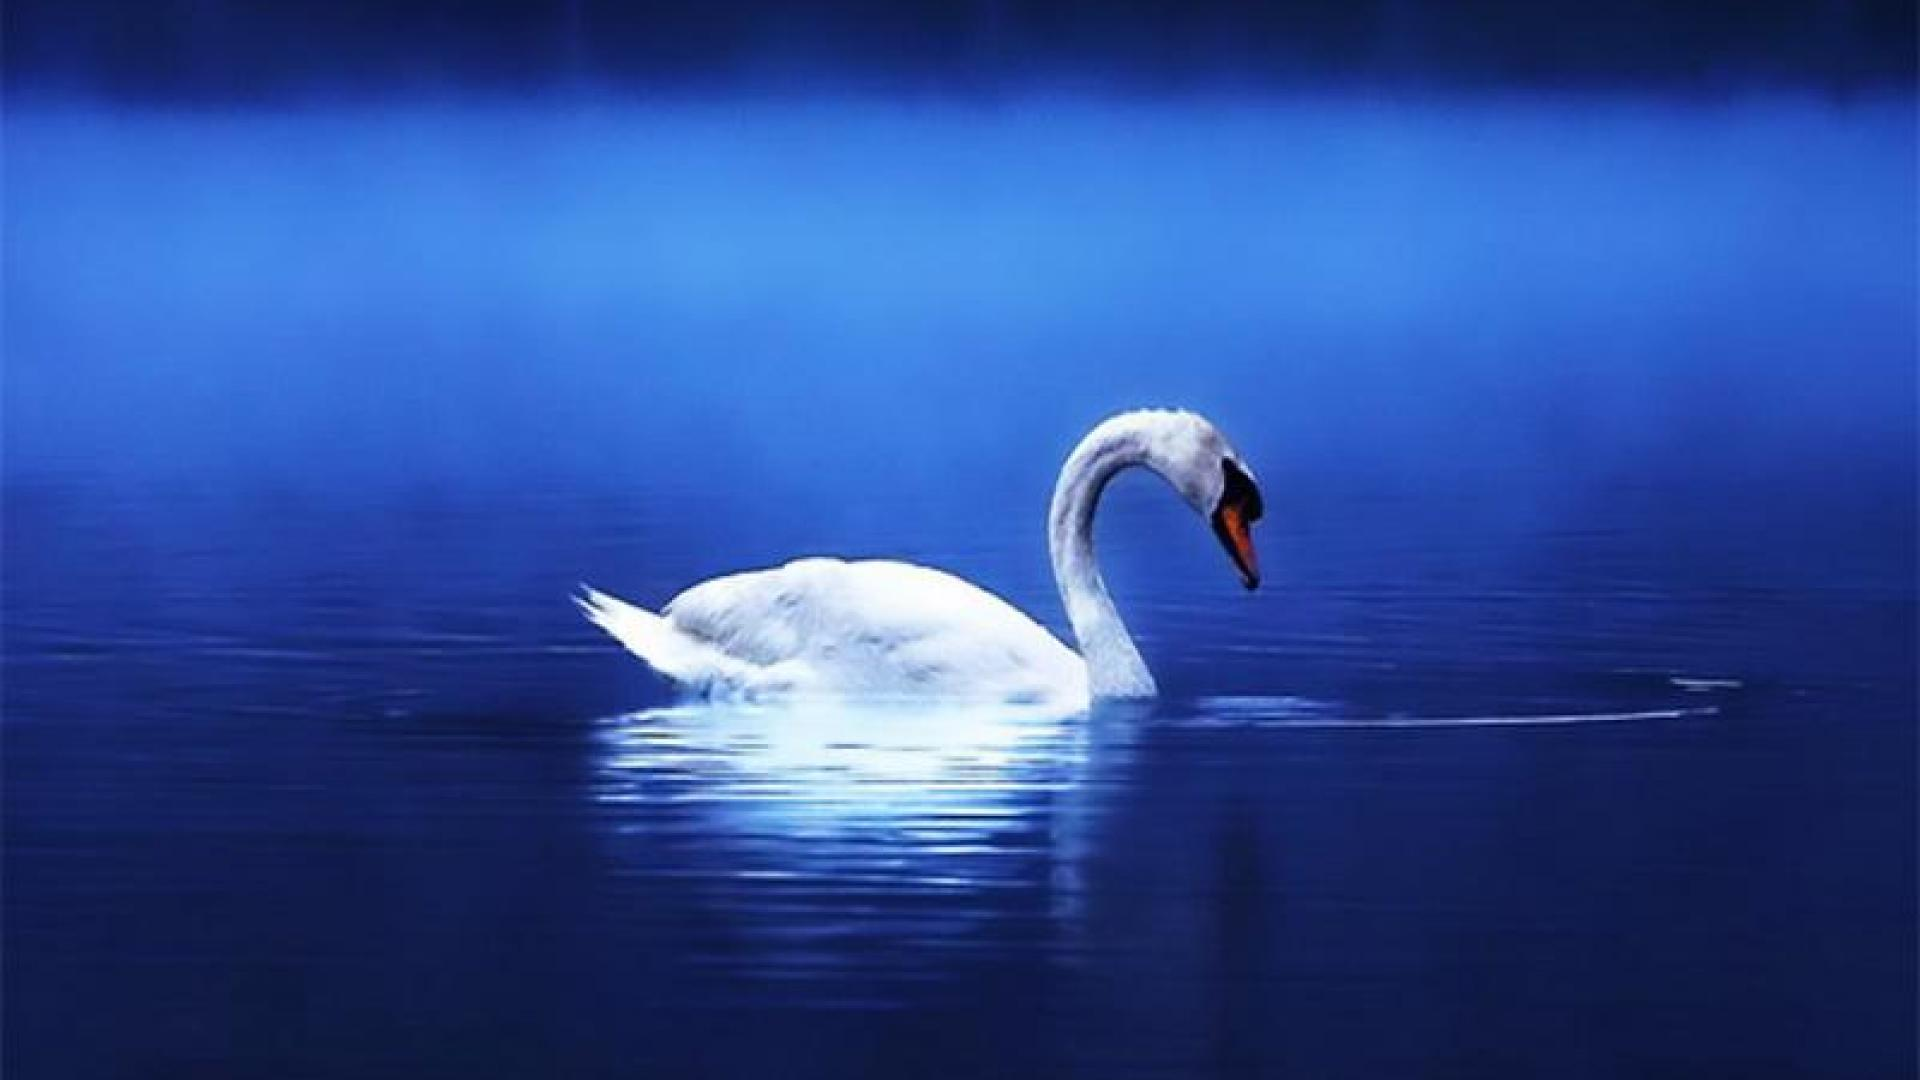 Wallpaper Tags: water lonely mirrored lake blue bird swan